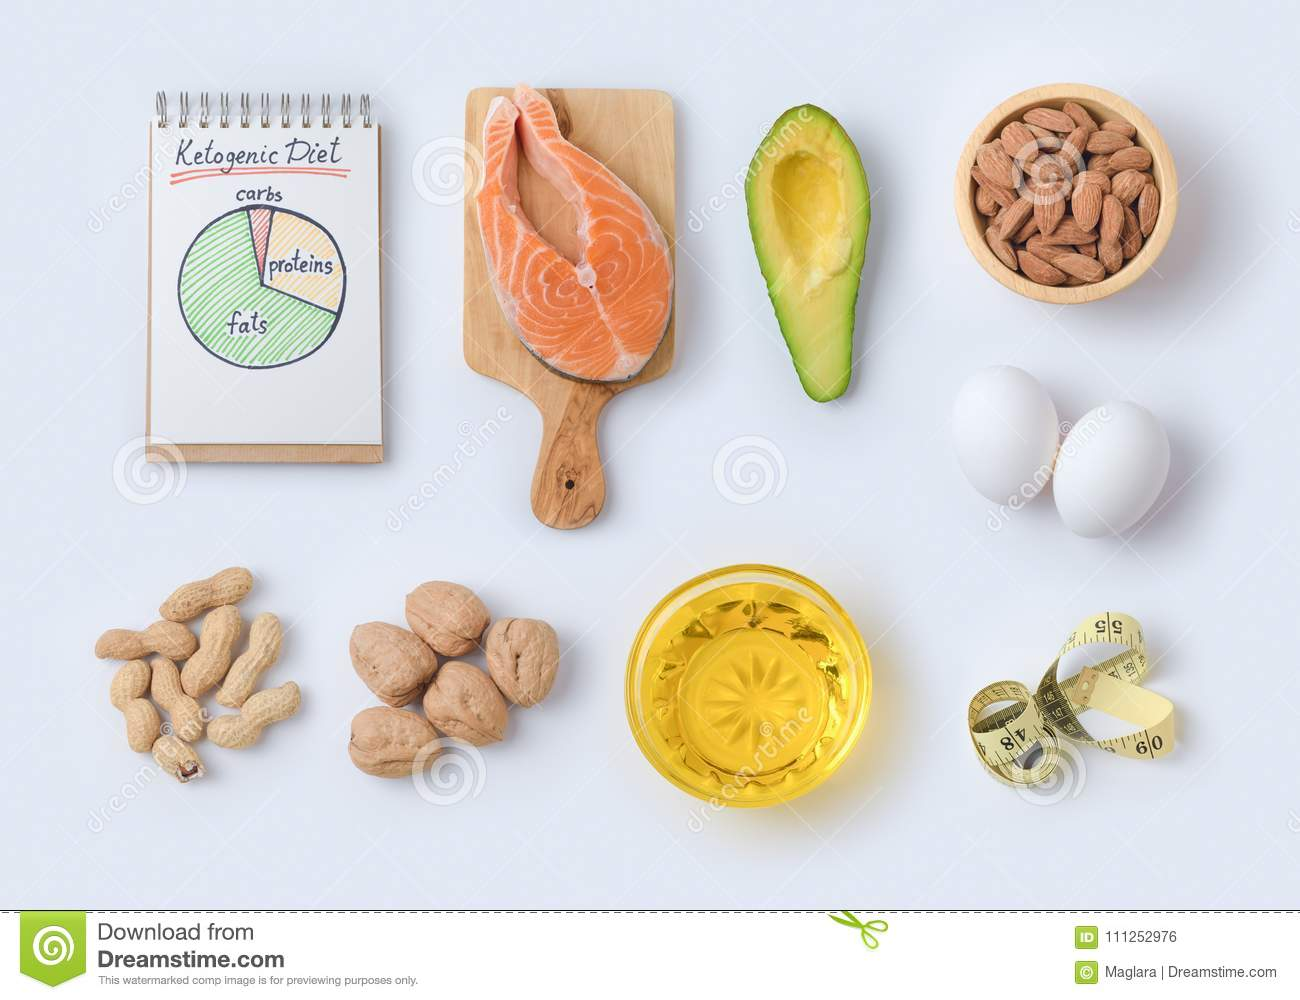 Ketogenic Low Carbs Diet Concept Stock Photo Image Of Walnuts